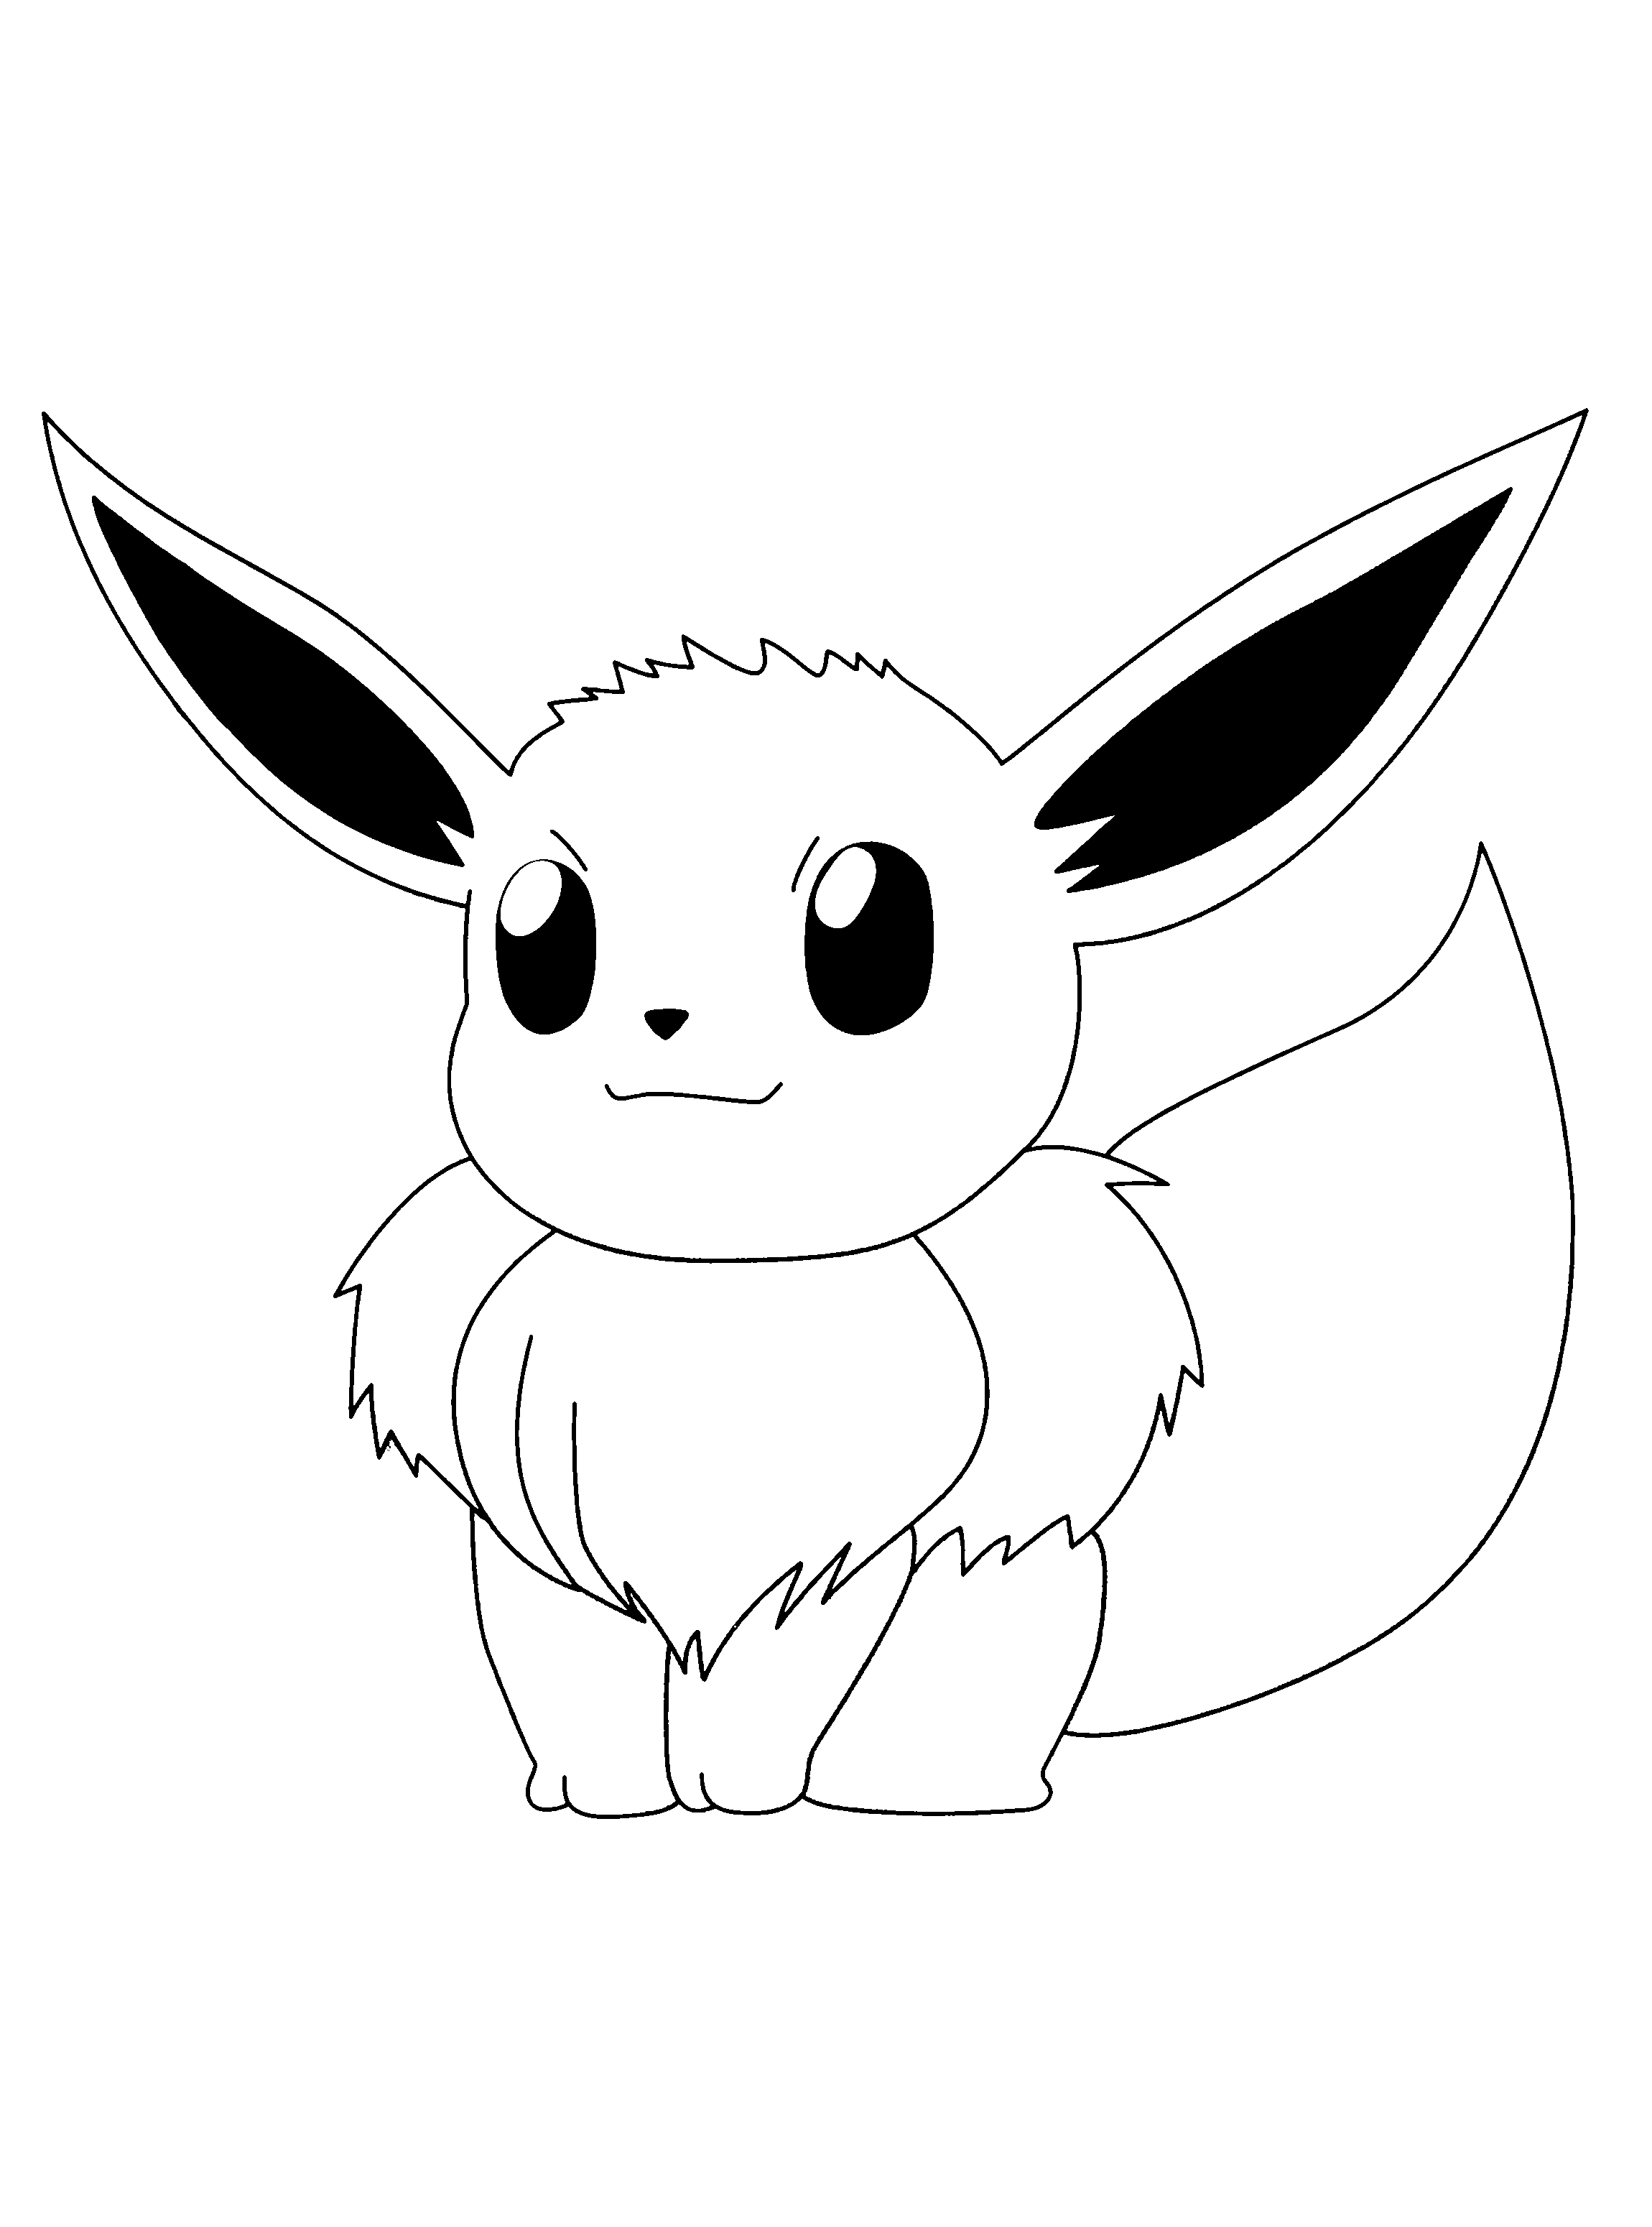 pokemon coloring pages - Pokemon Pictures To Print Out